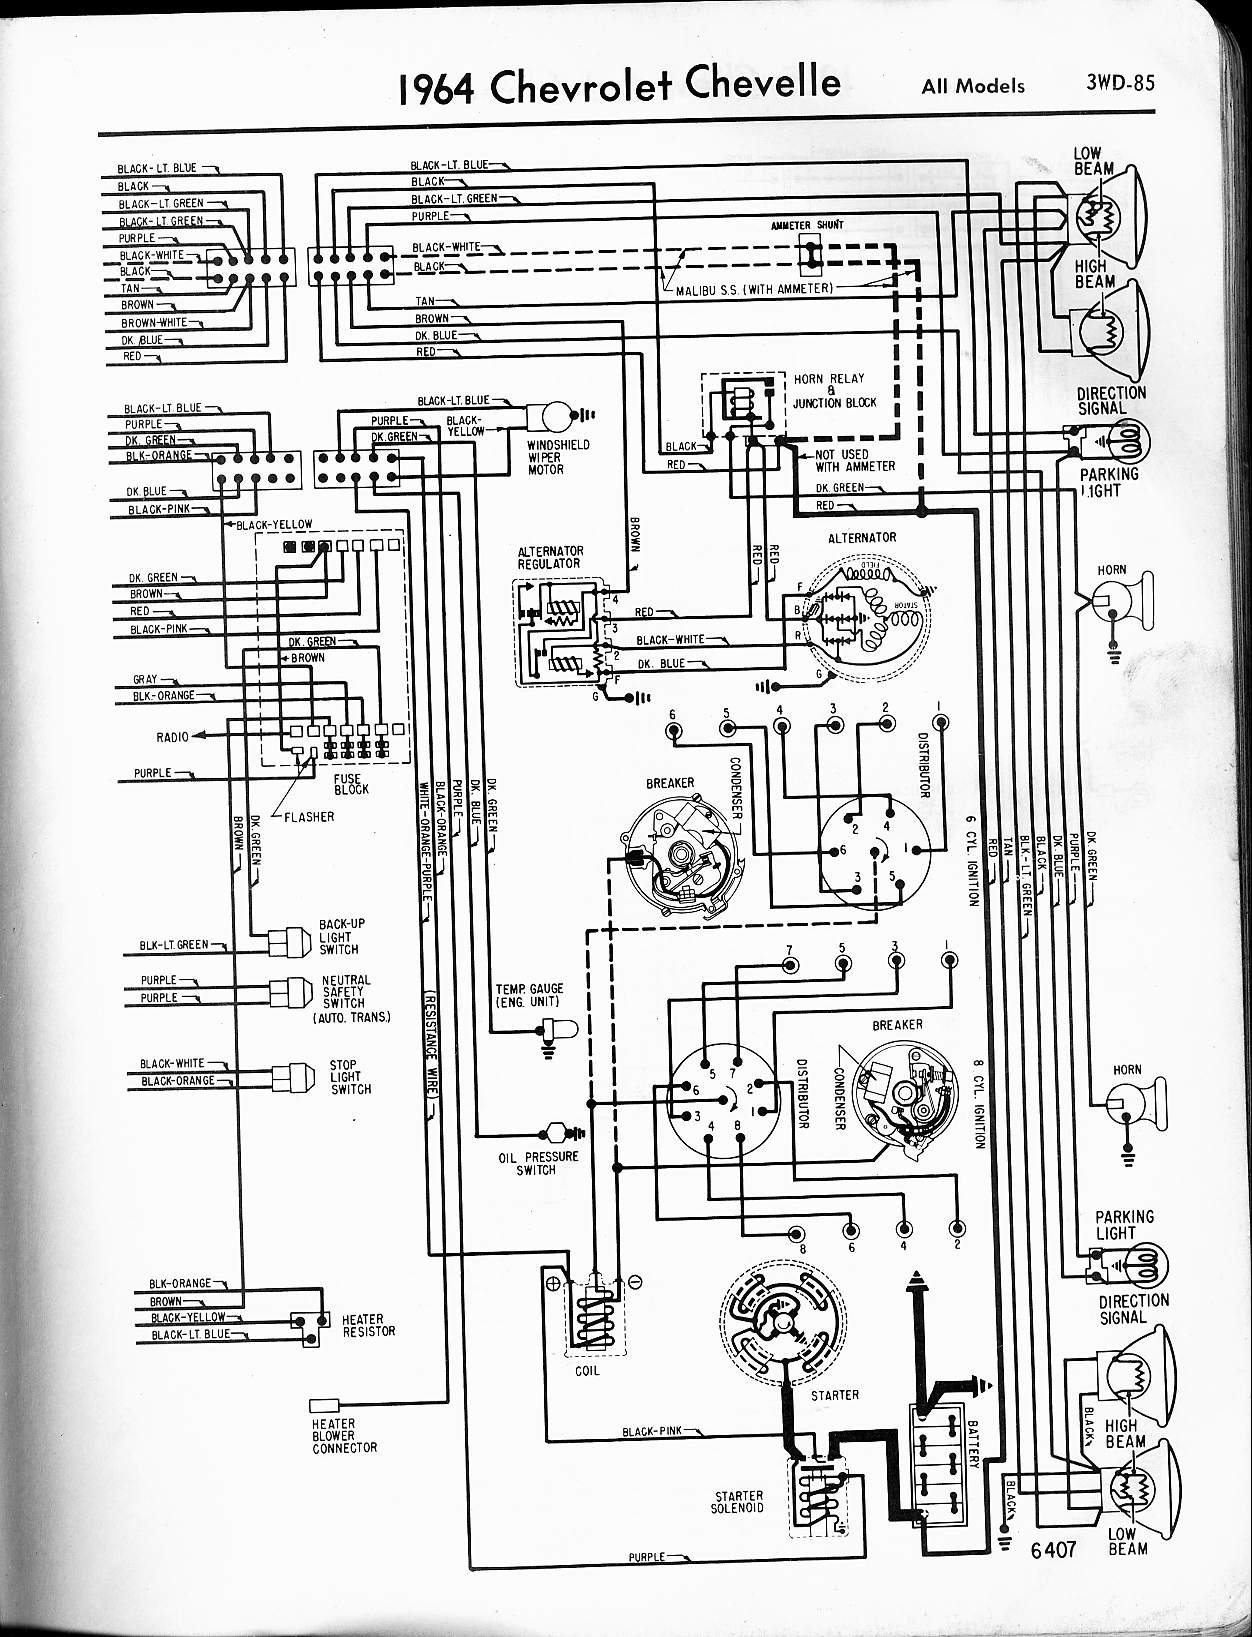 1969 chevelle engine wiring diagram wire center u2022 rh linxglobal co 1967 Chevelle Dash Wiring 1966 Chevelle Wiring Harness